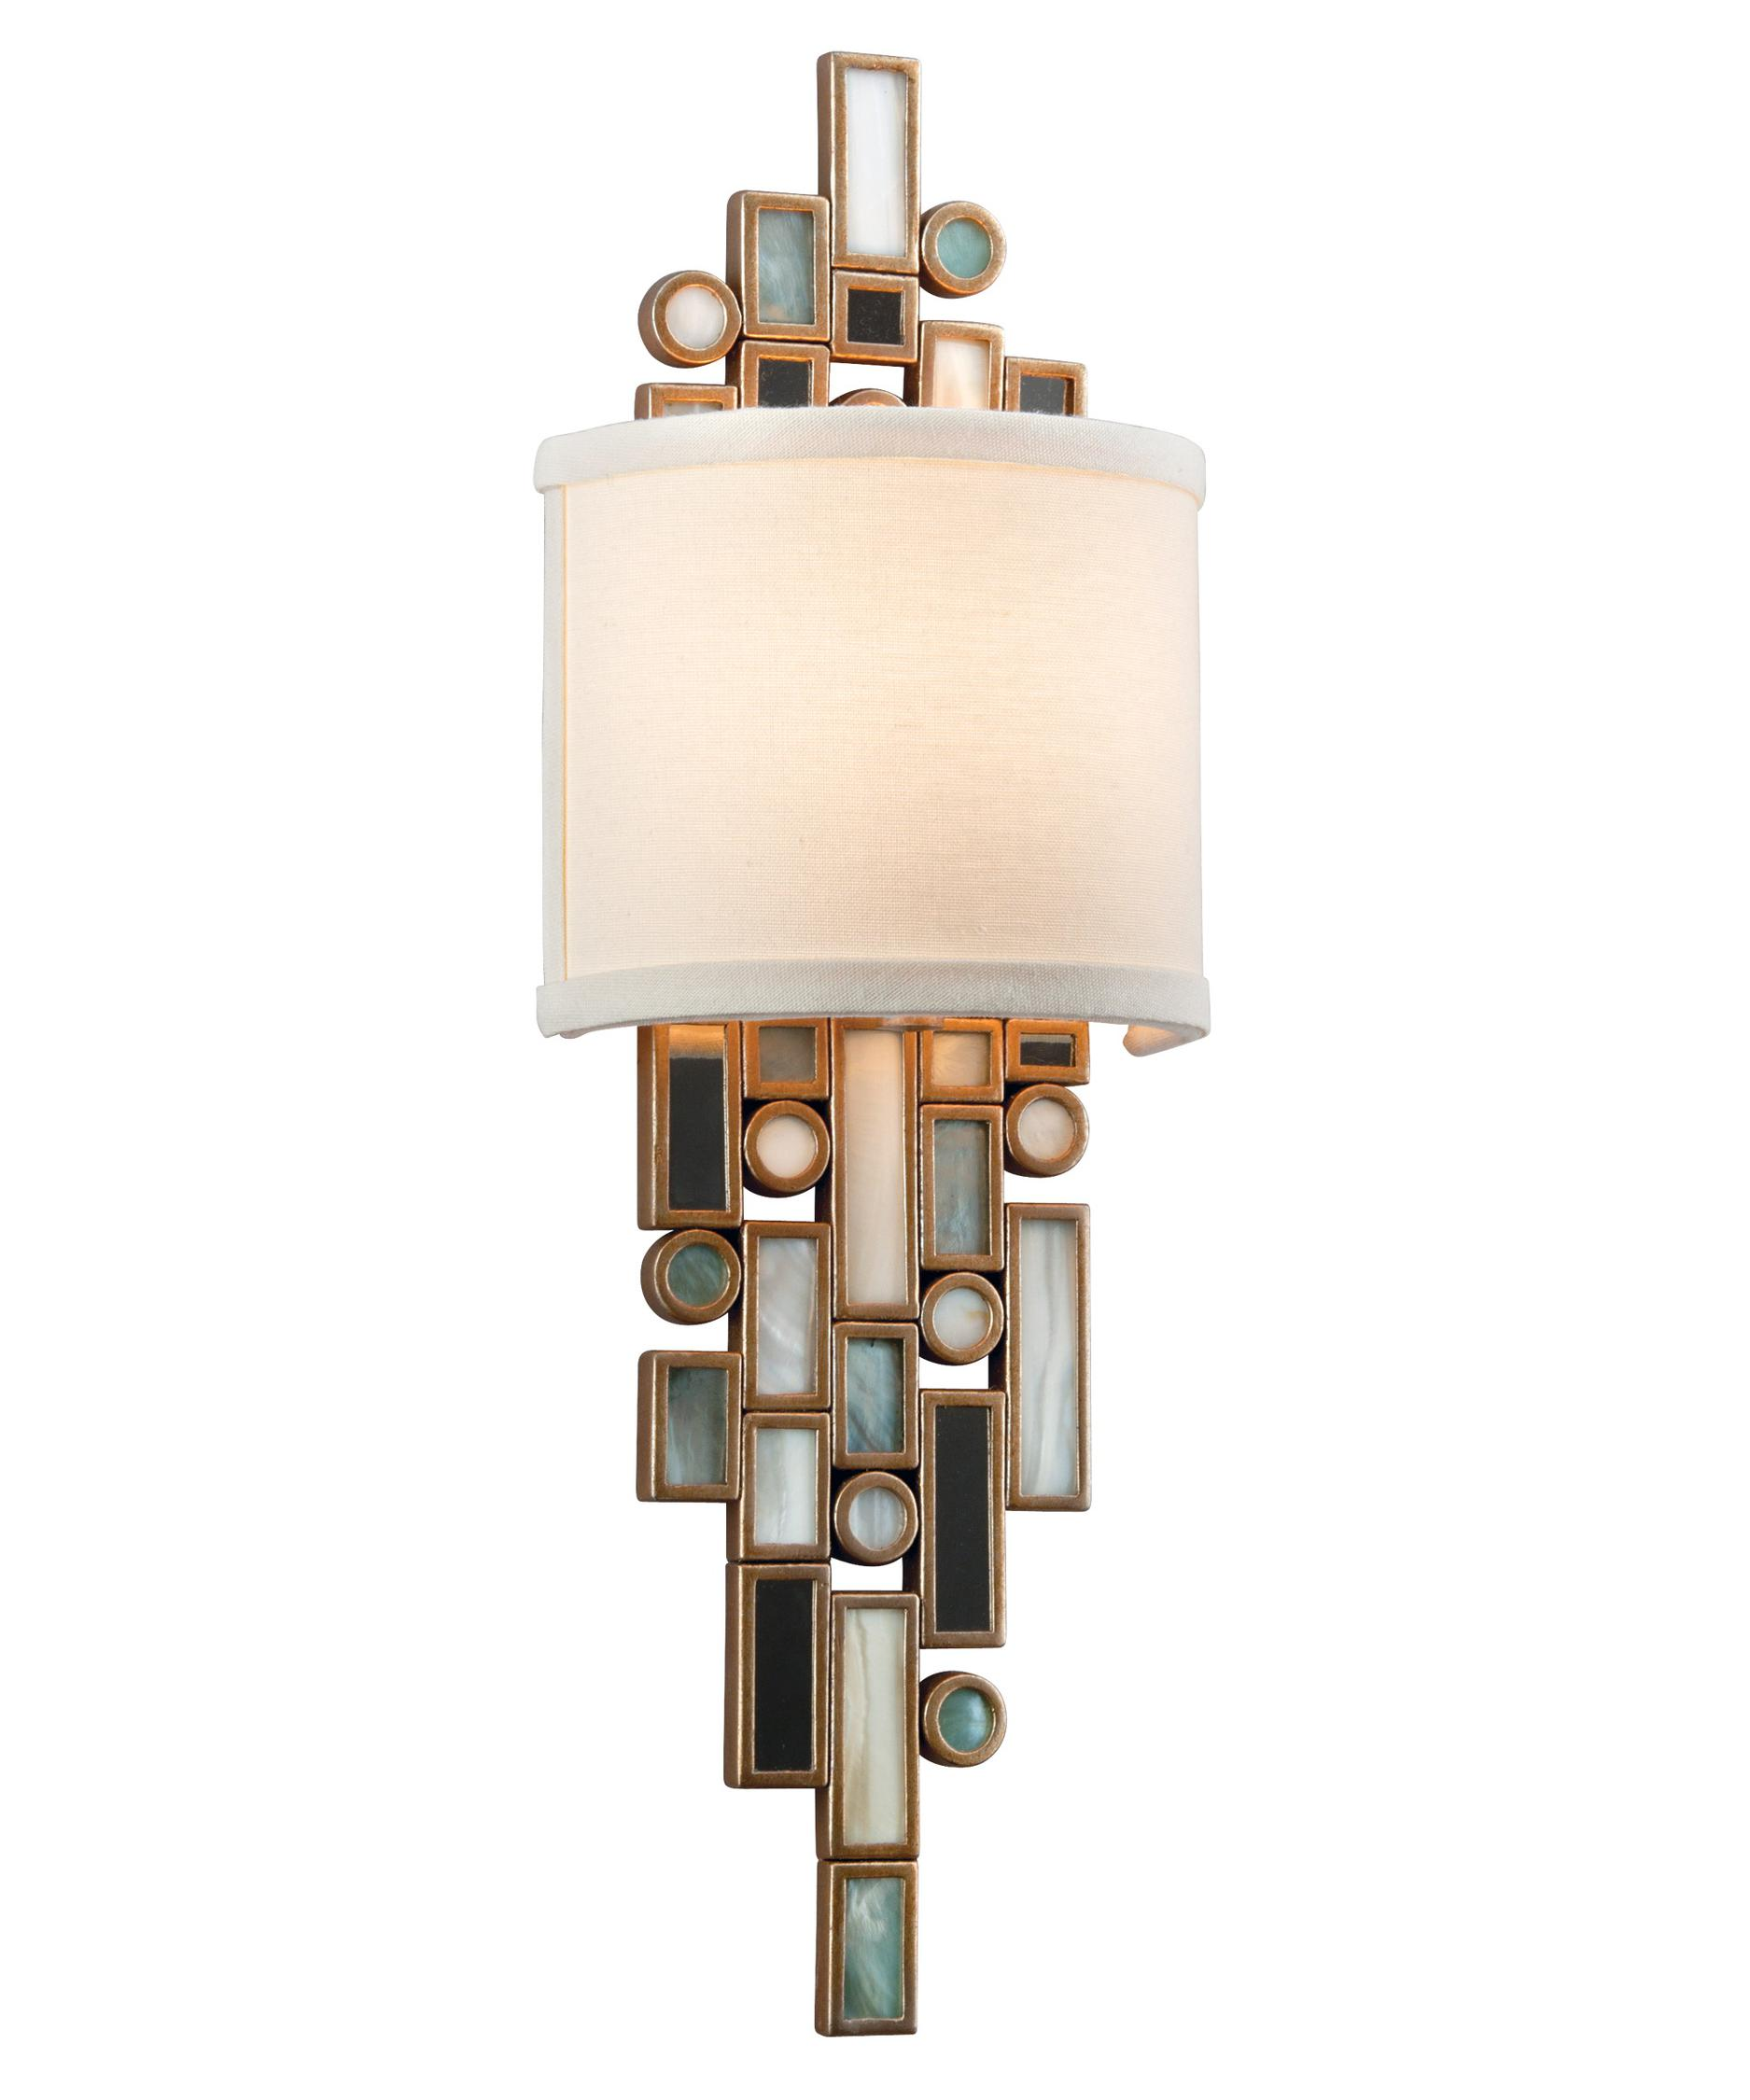 Corbett Lighting 150 11 Dolcetti 6 Inch Wall Sconce